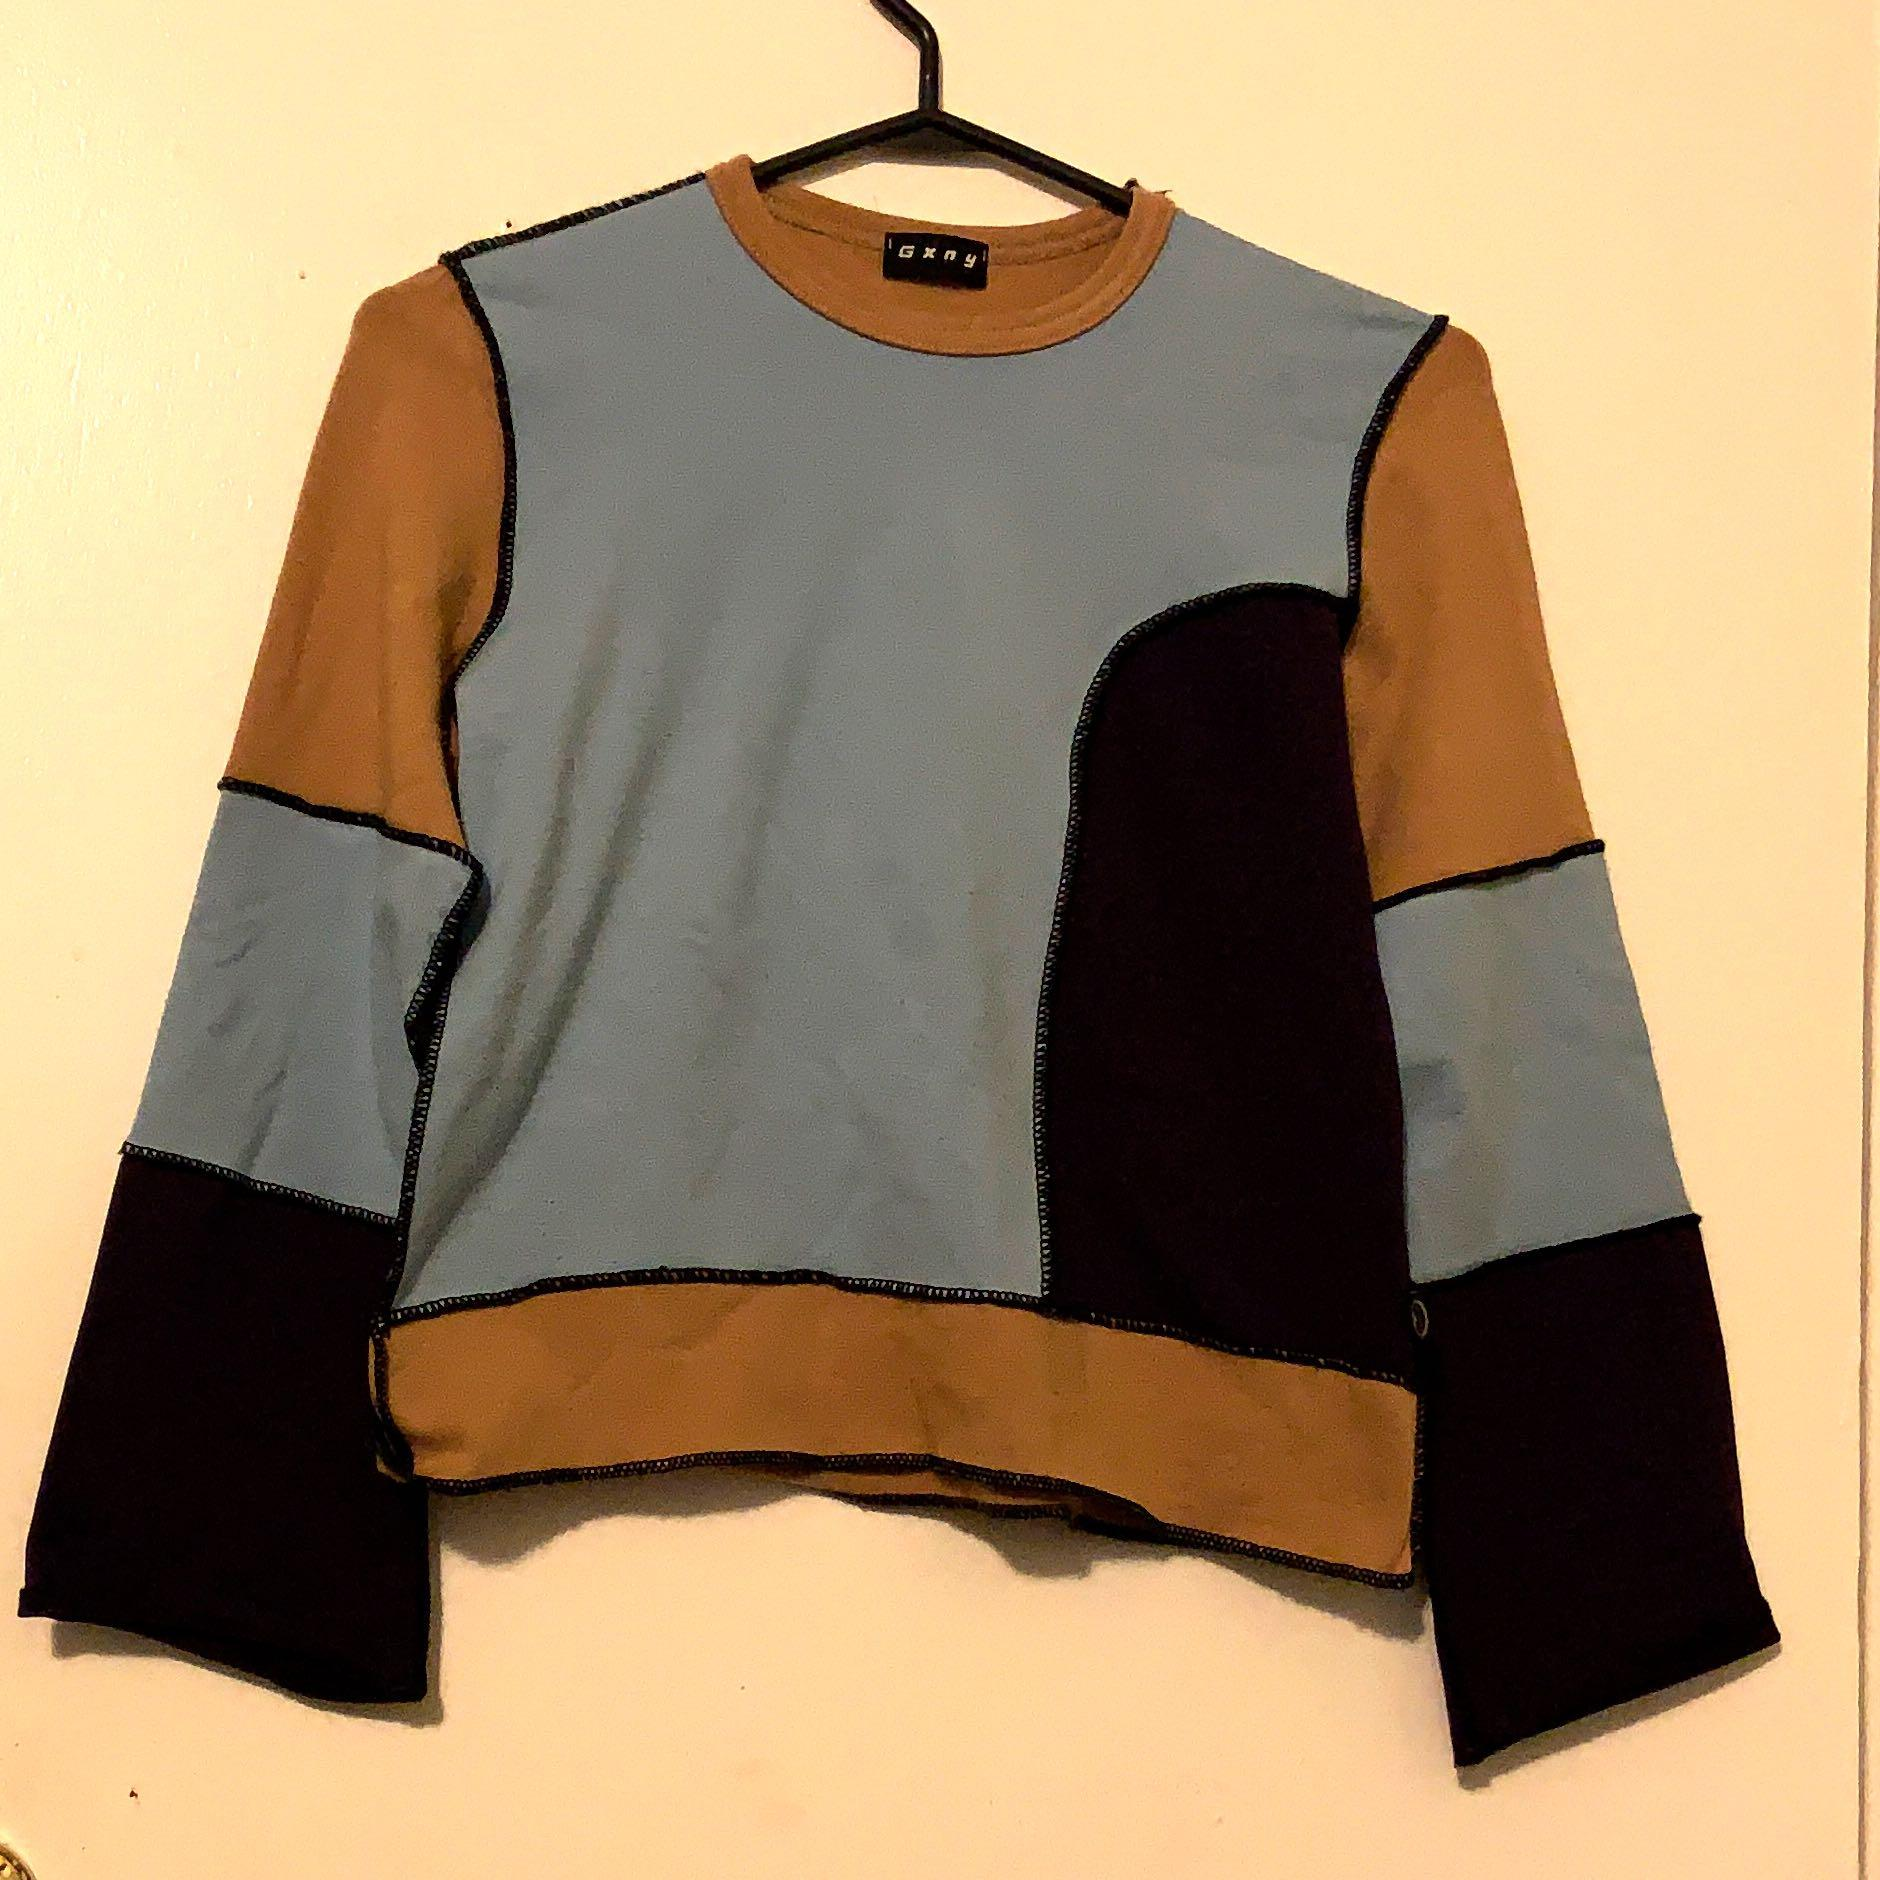 REWORK STYLE PATCH WORK TOP